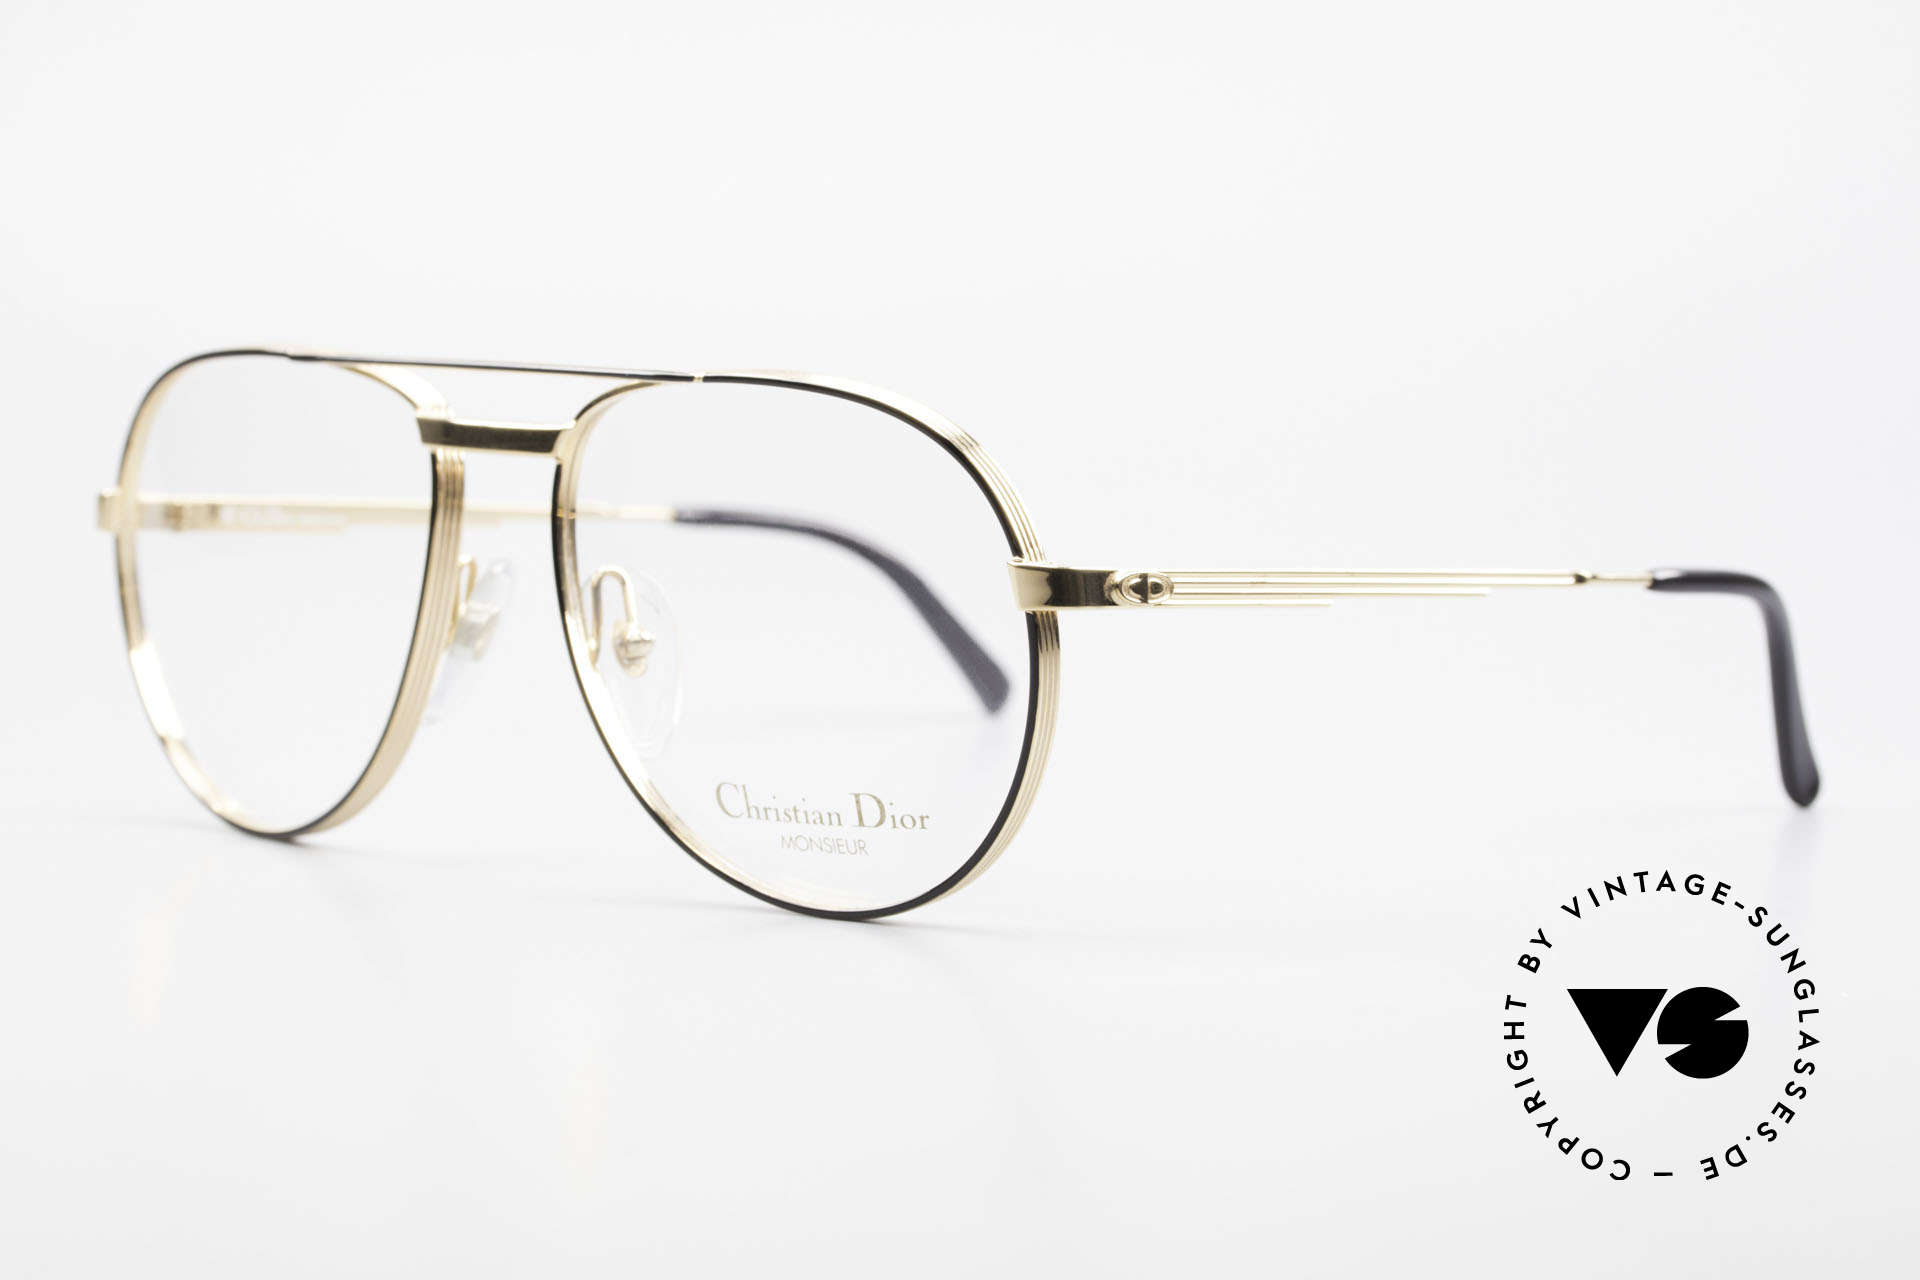 Christian Dior 2448 Gold-Plated Dior Monsieur Frame, tangible / incredible TOP NOTCH-quality, built to last, Made for Men